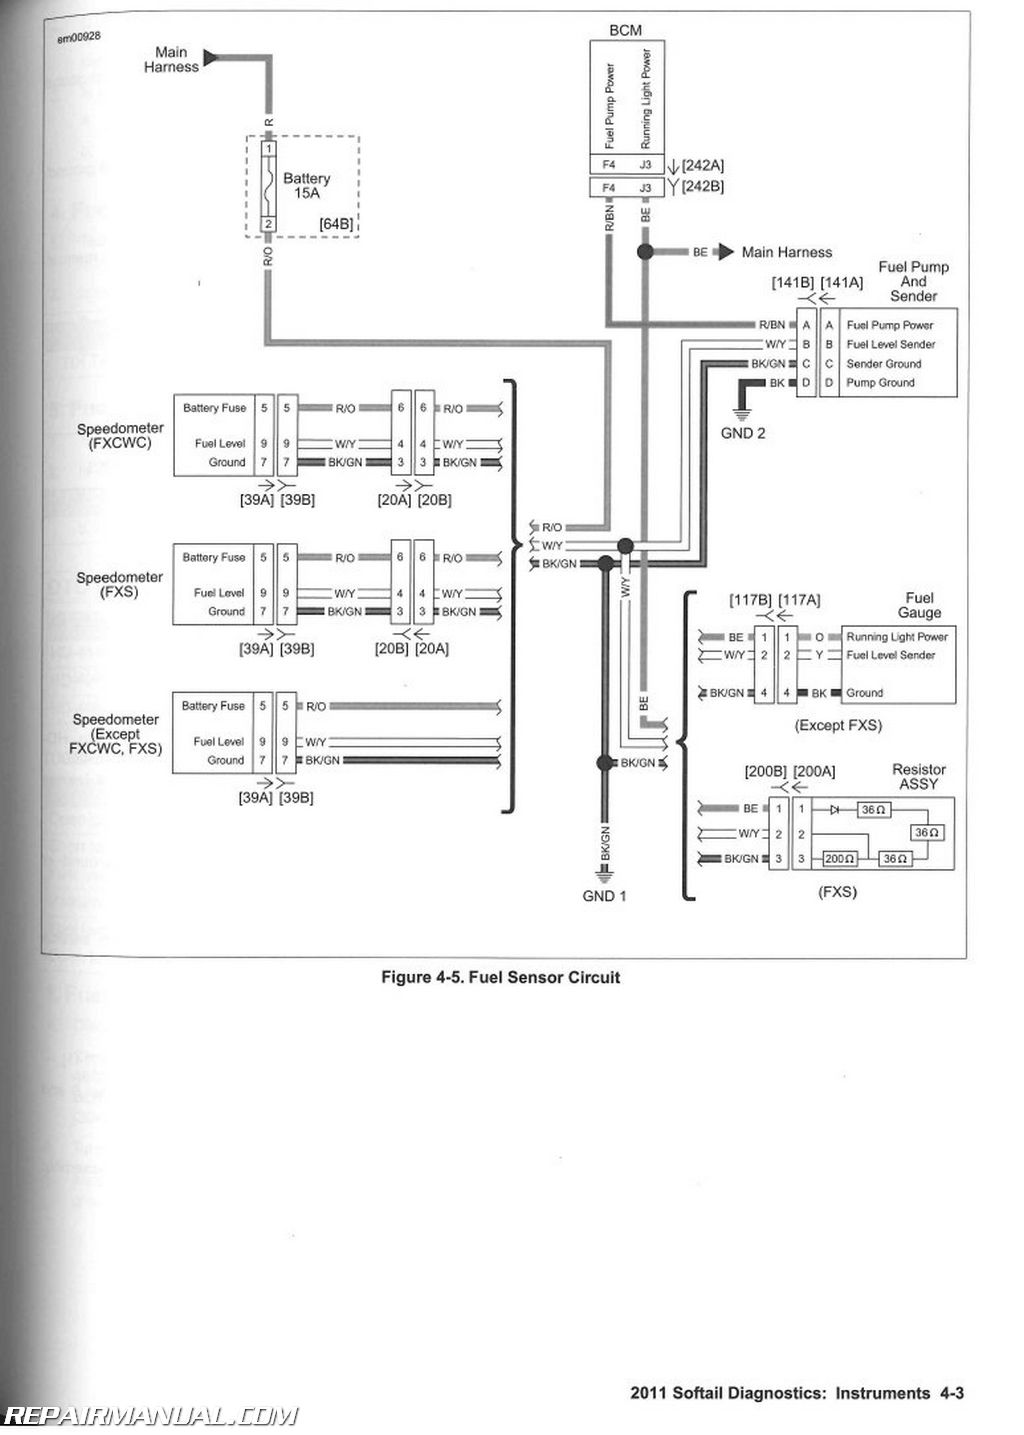 Harley Davidson Motorcycle Wiring Diagrams Fuel Pump